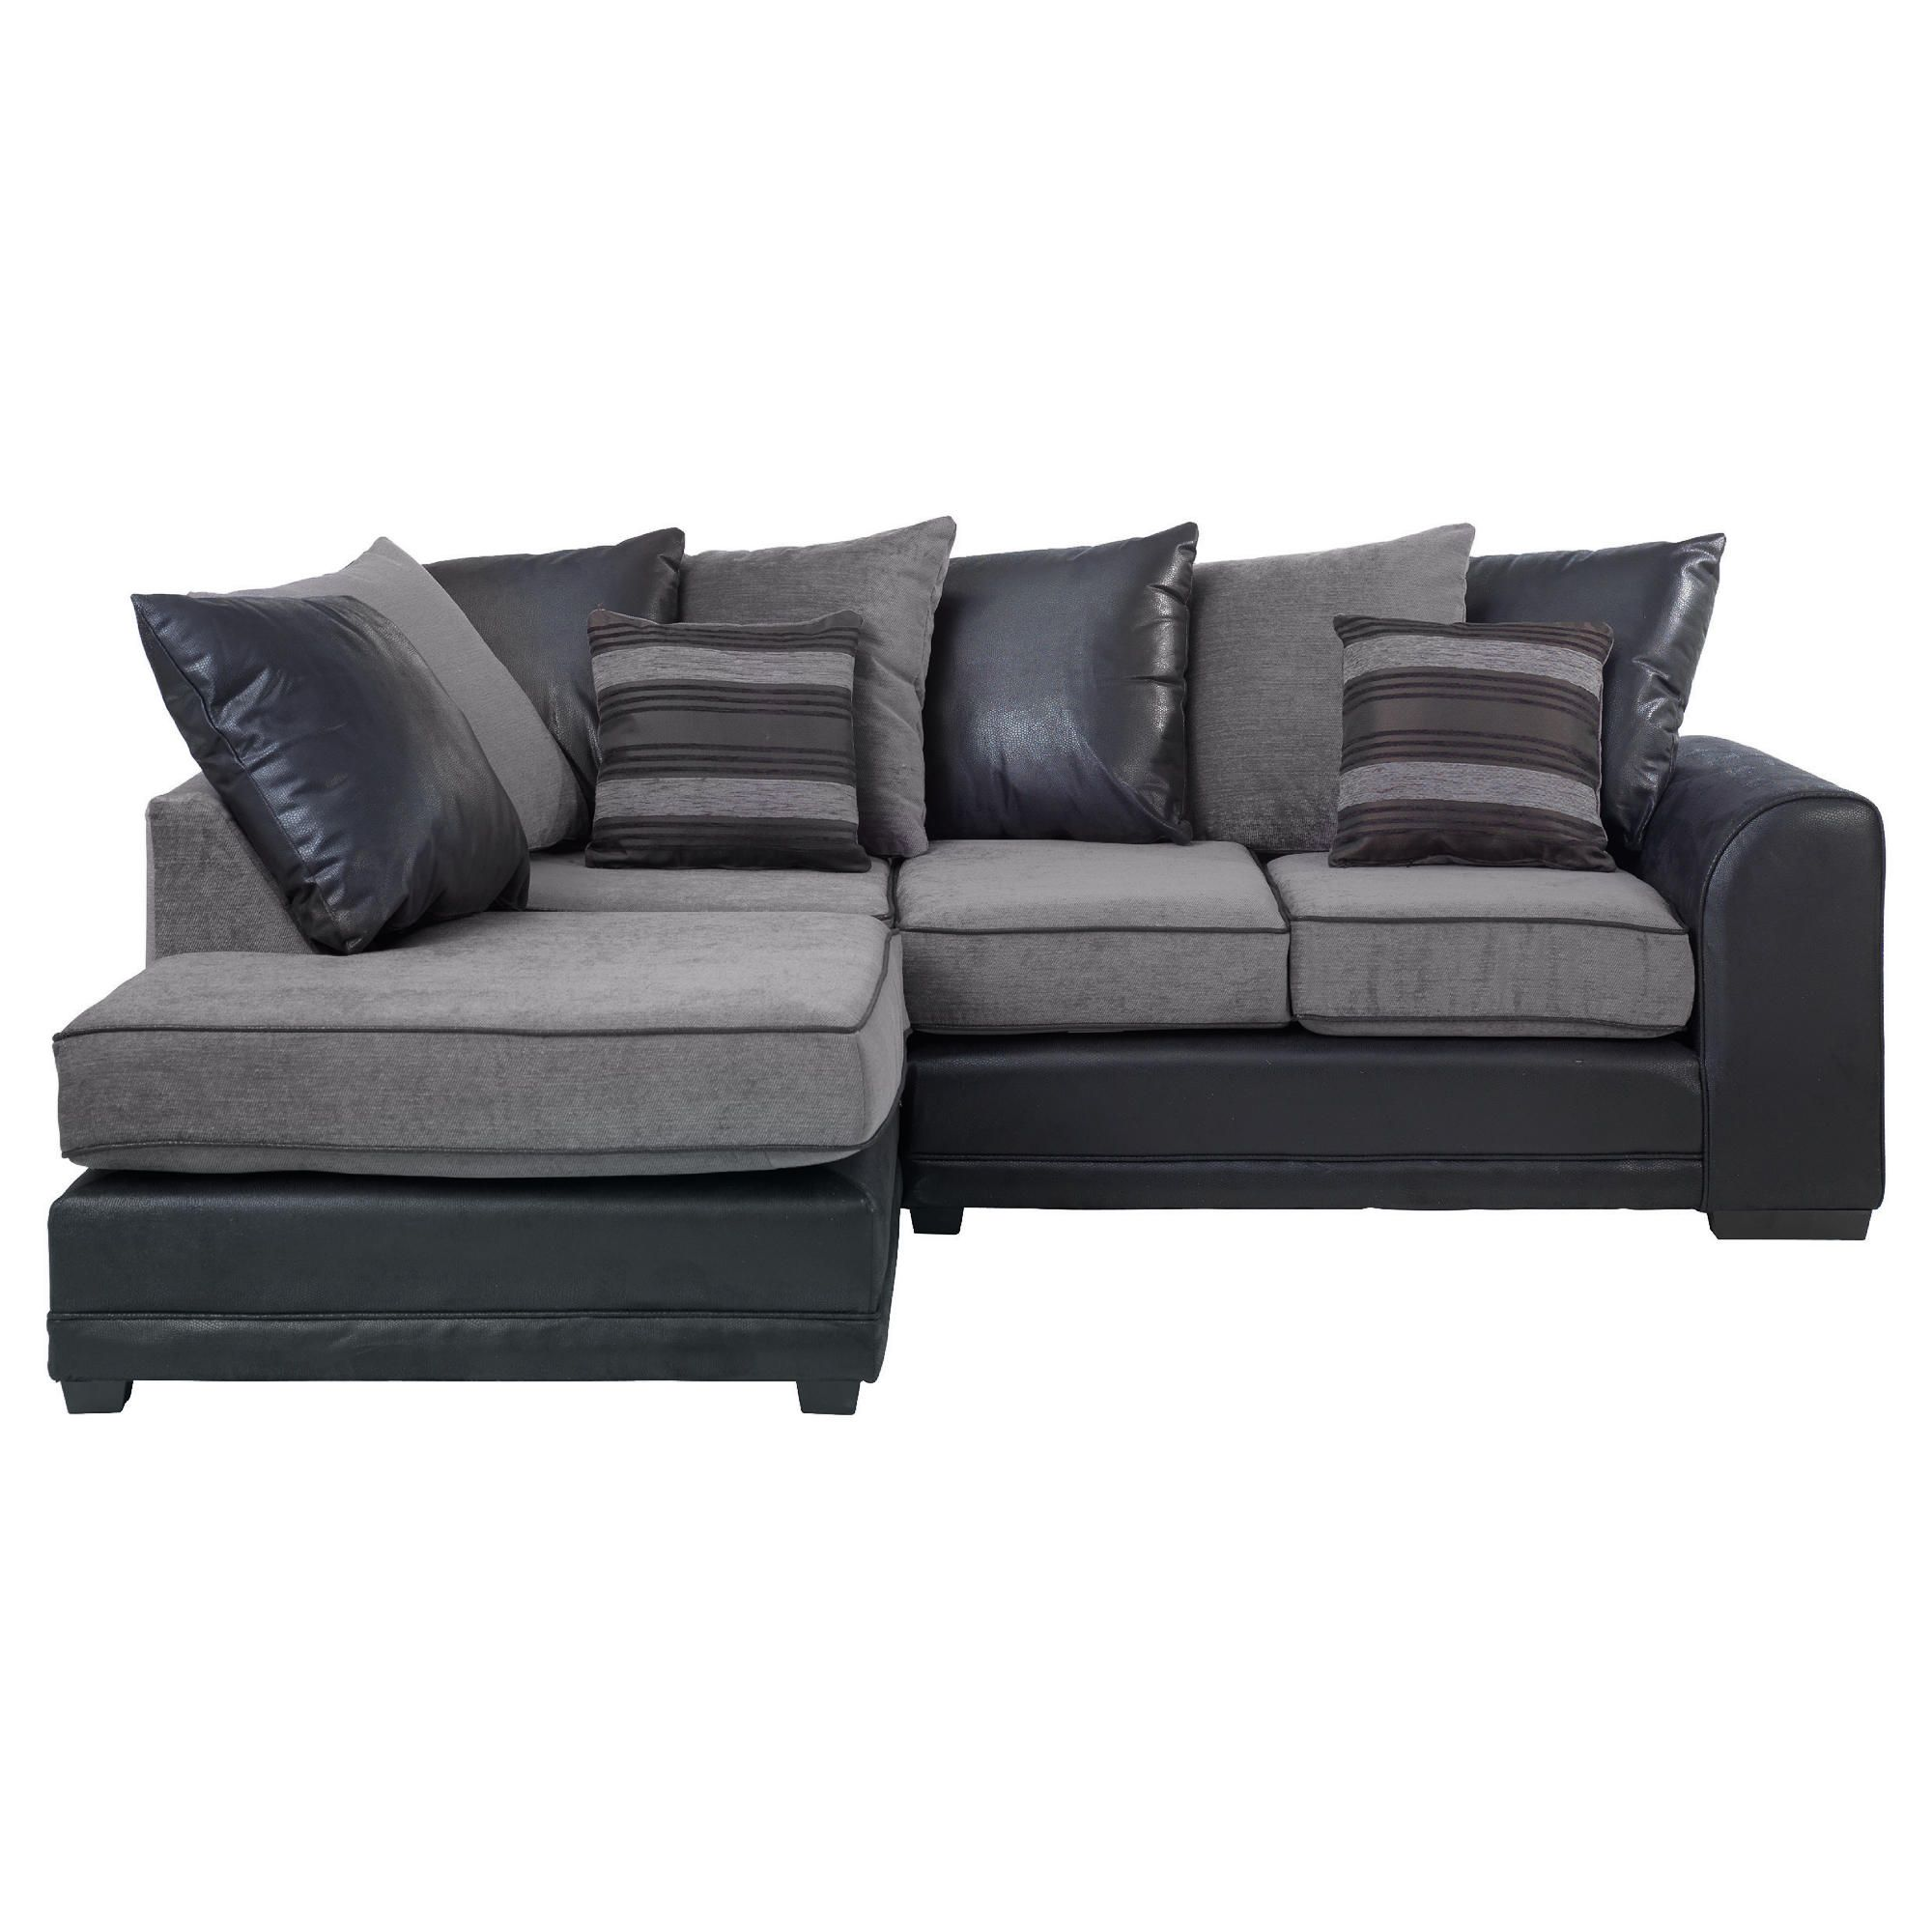 Inca Leather Effect & Fabric Corner Sofa, Charcoal Left Hand Facing at Tesco Direct